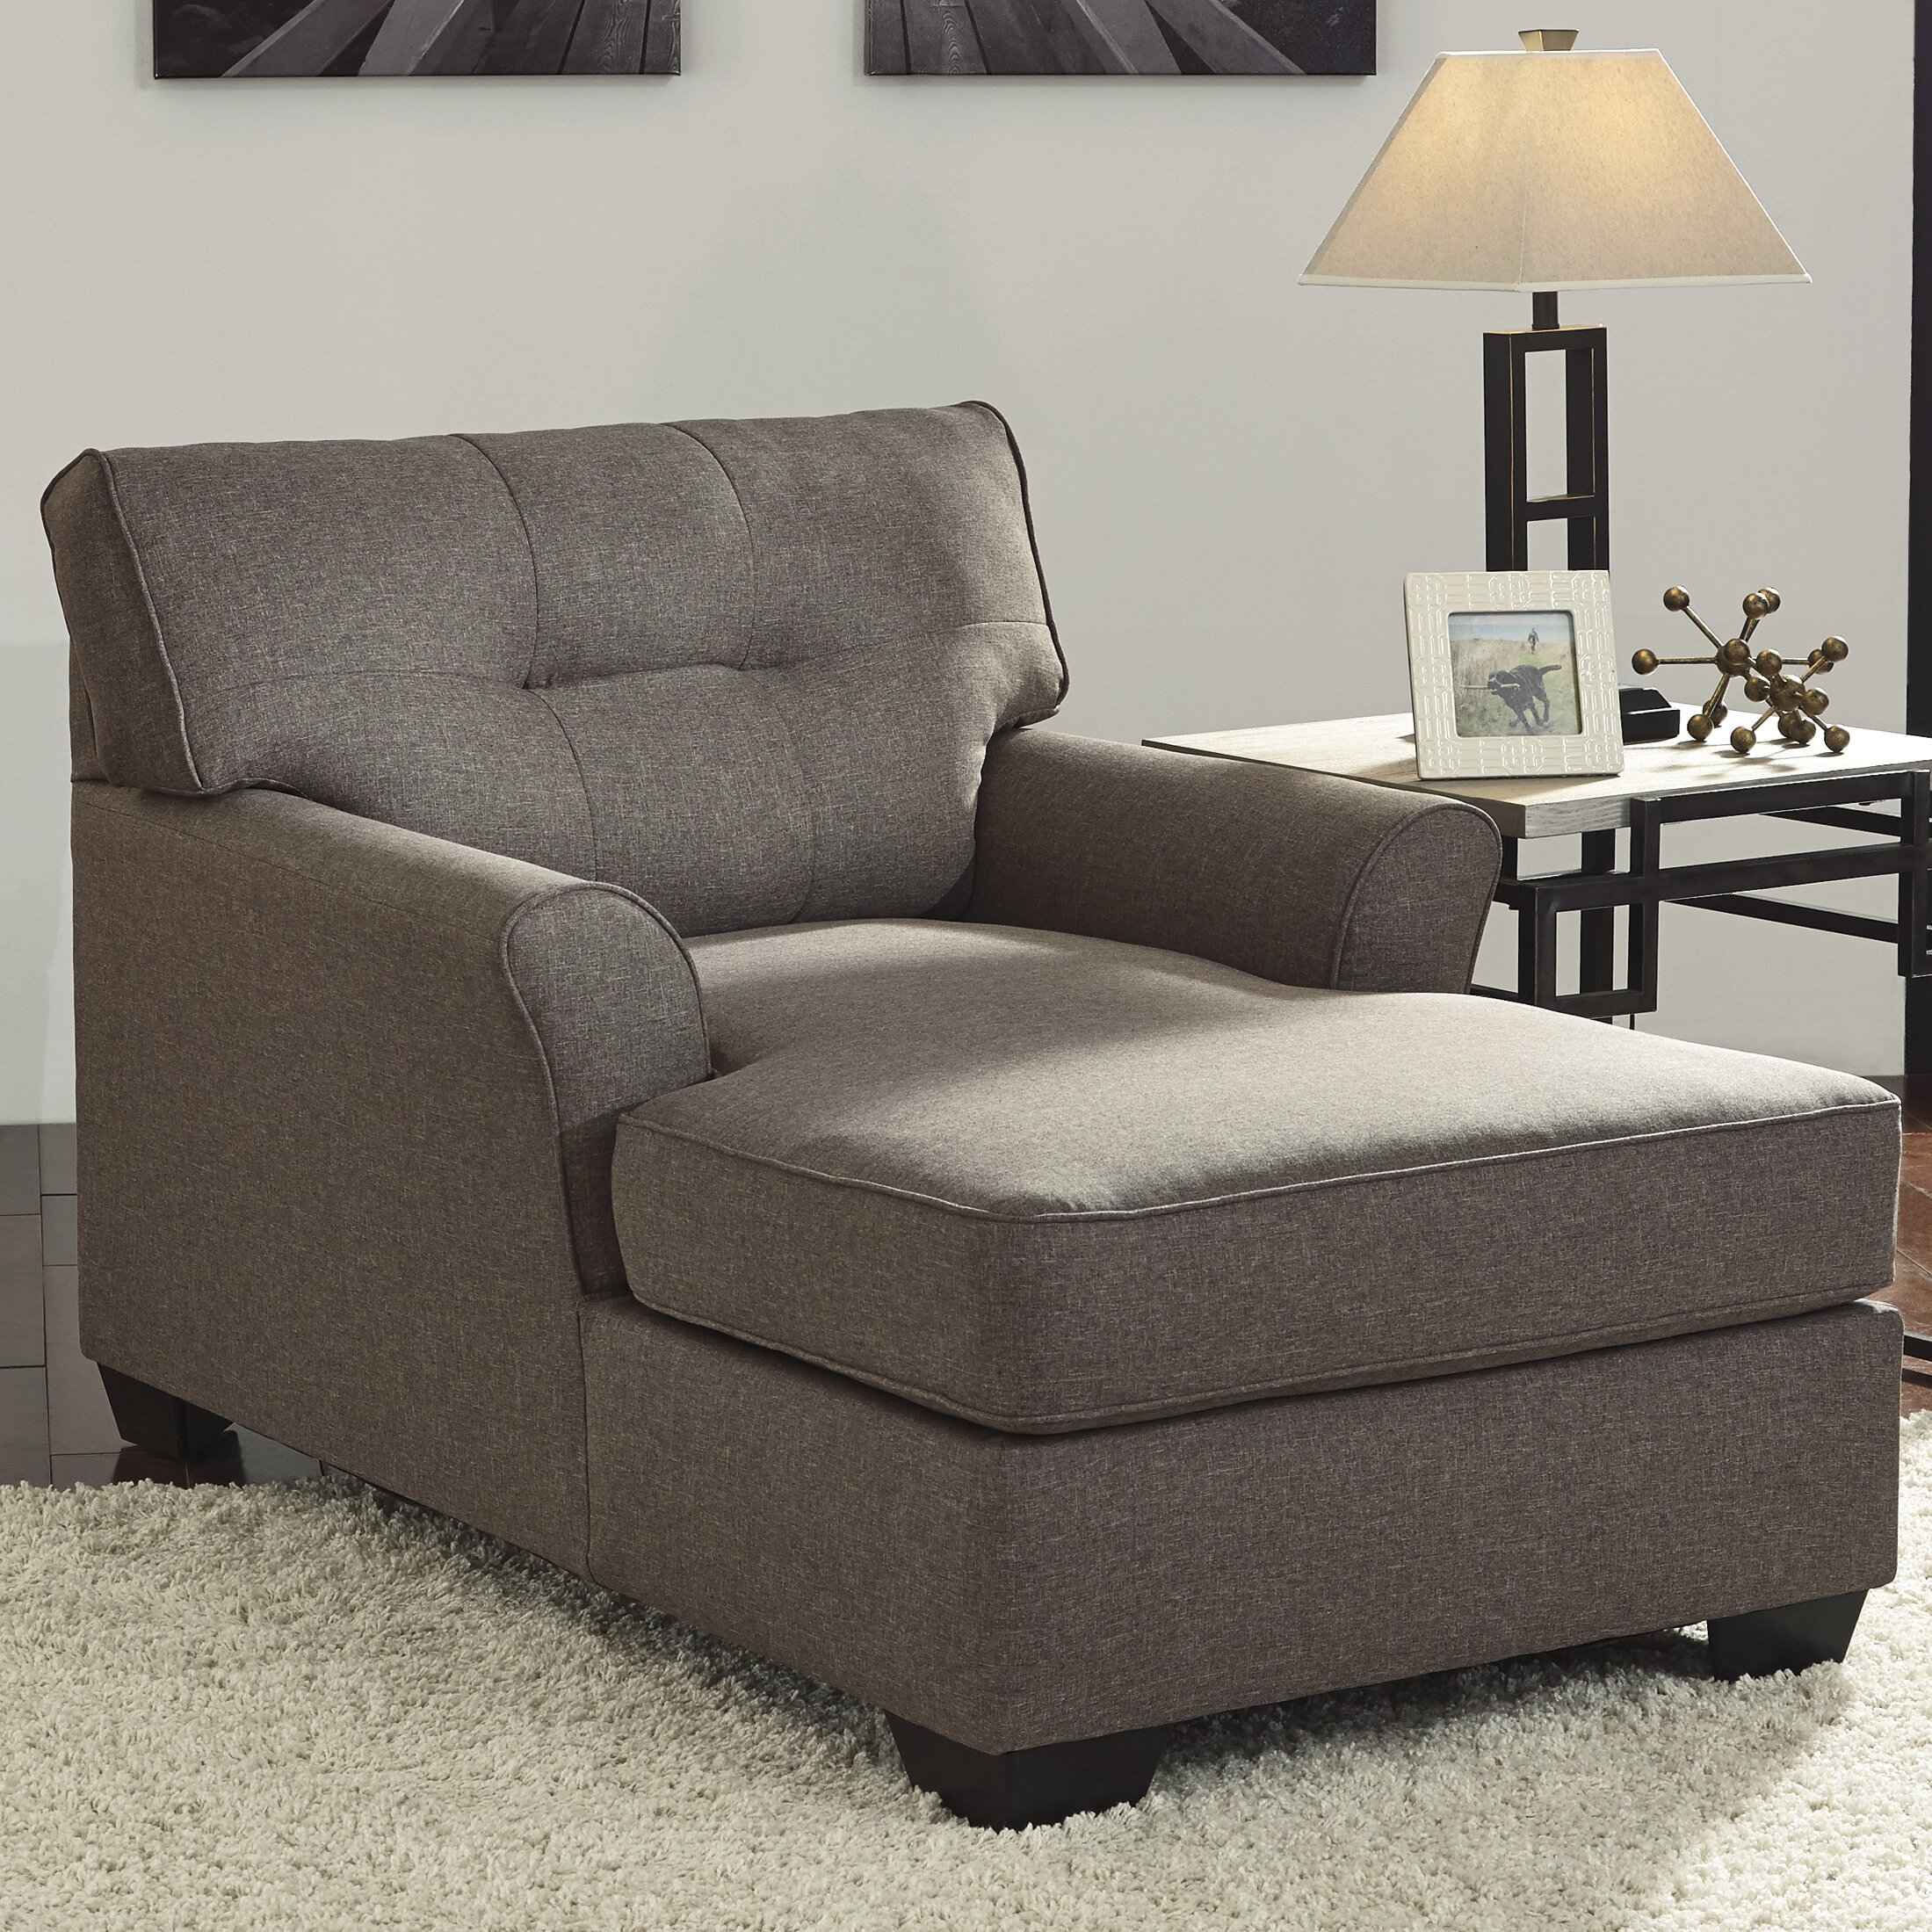 Signature Design by Ashley Tibbee Chaise Lounge & Reviews | Wayfair Supply